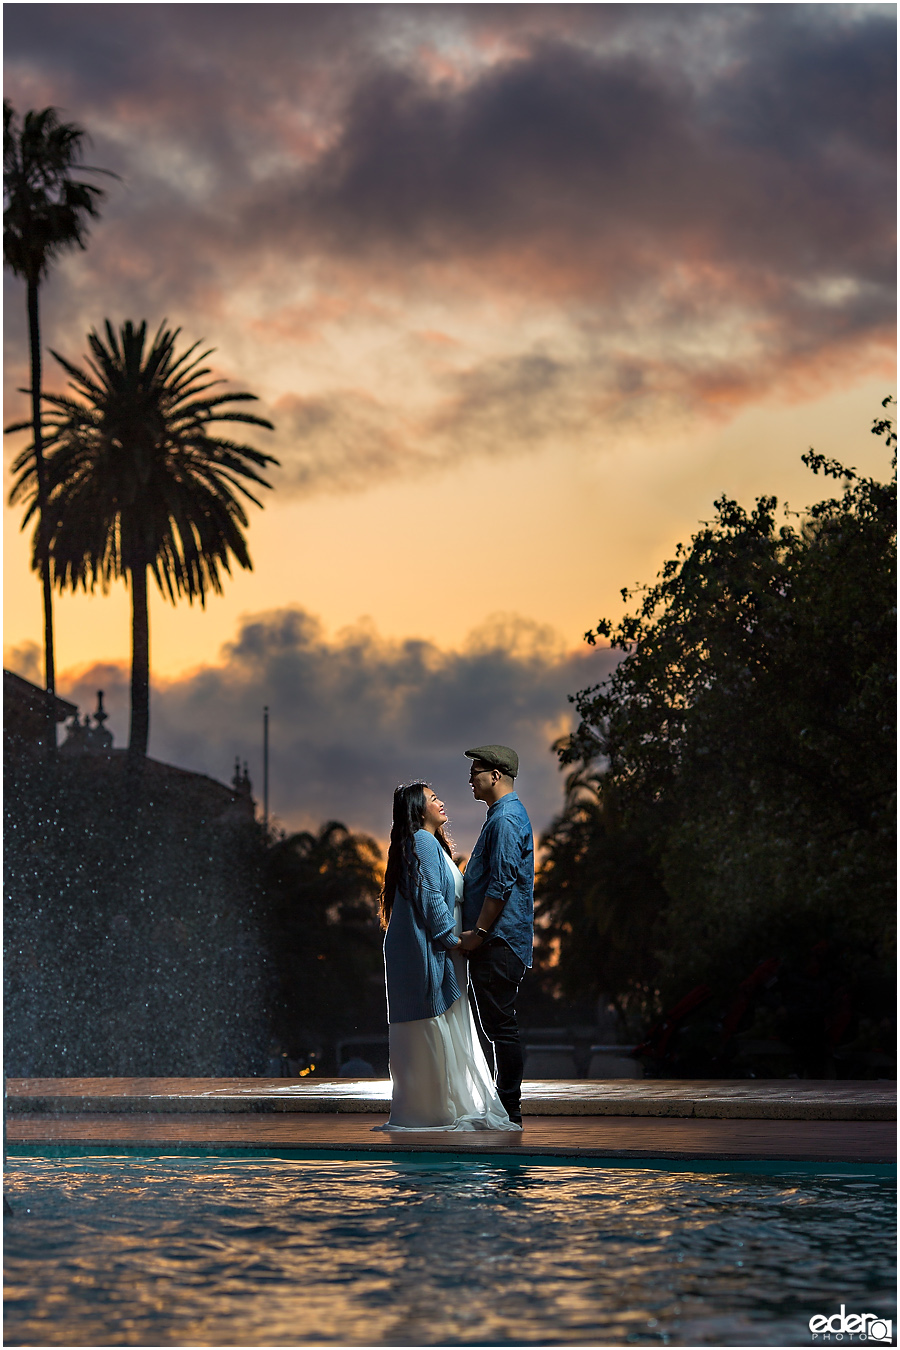 Balboa Park sunset engagement session